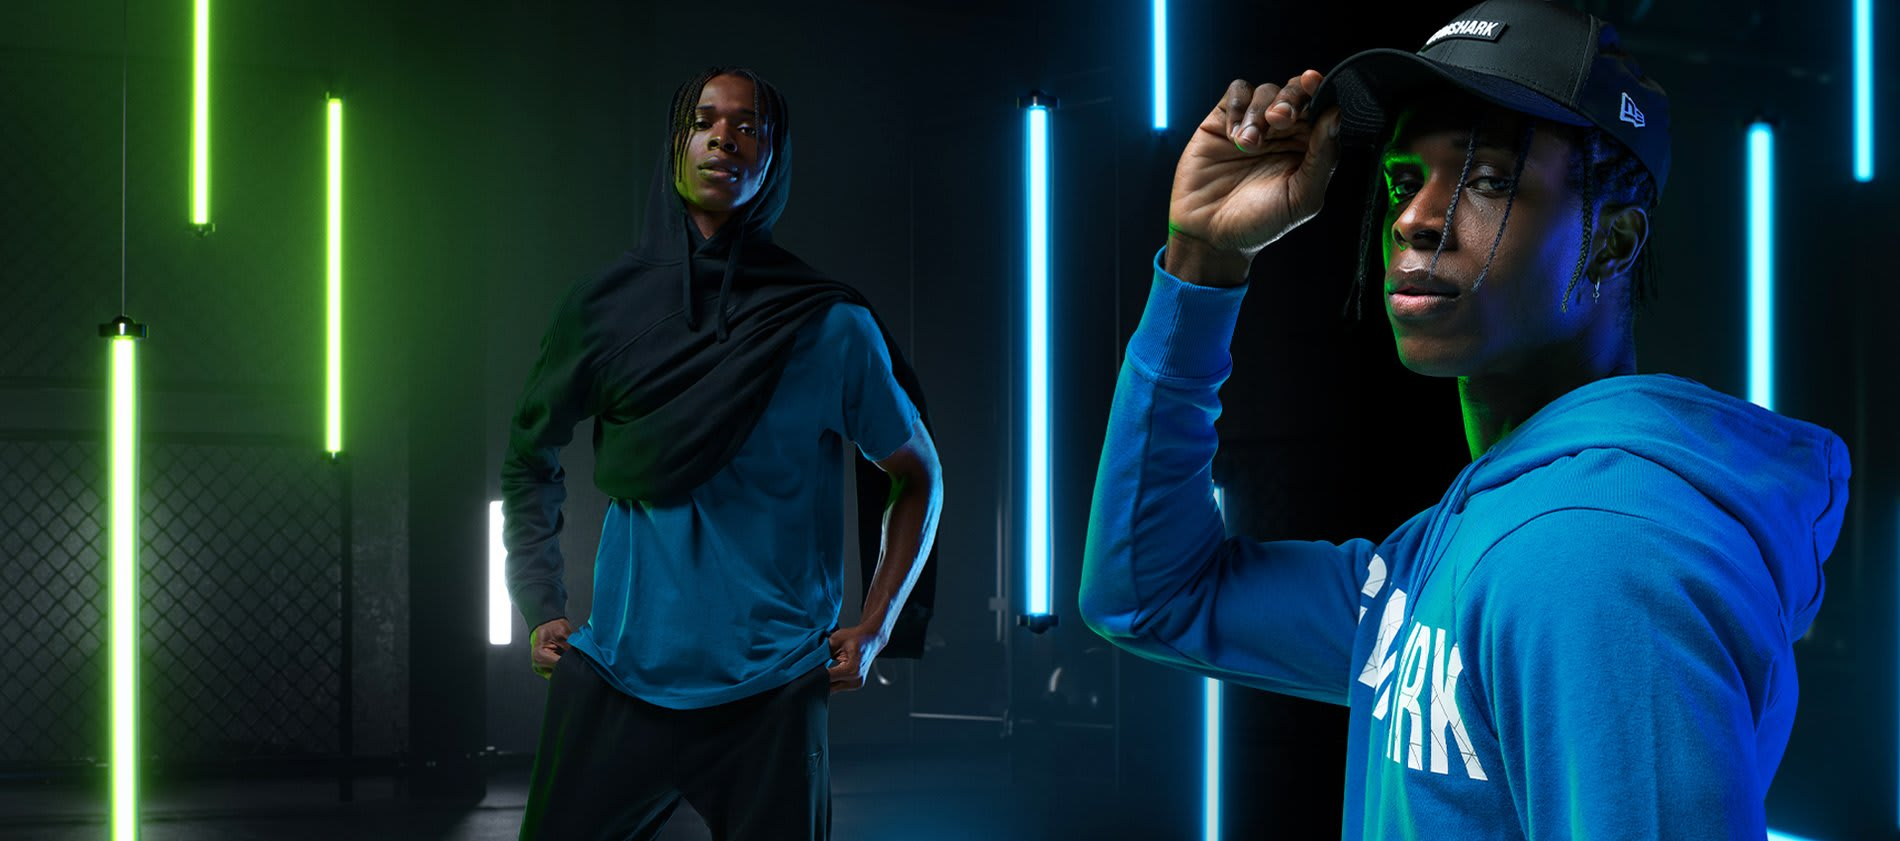 Collage of model posing in the Compound Collection and a blue Bold hoodie against a dark background with blue and green neon lights.